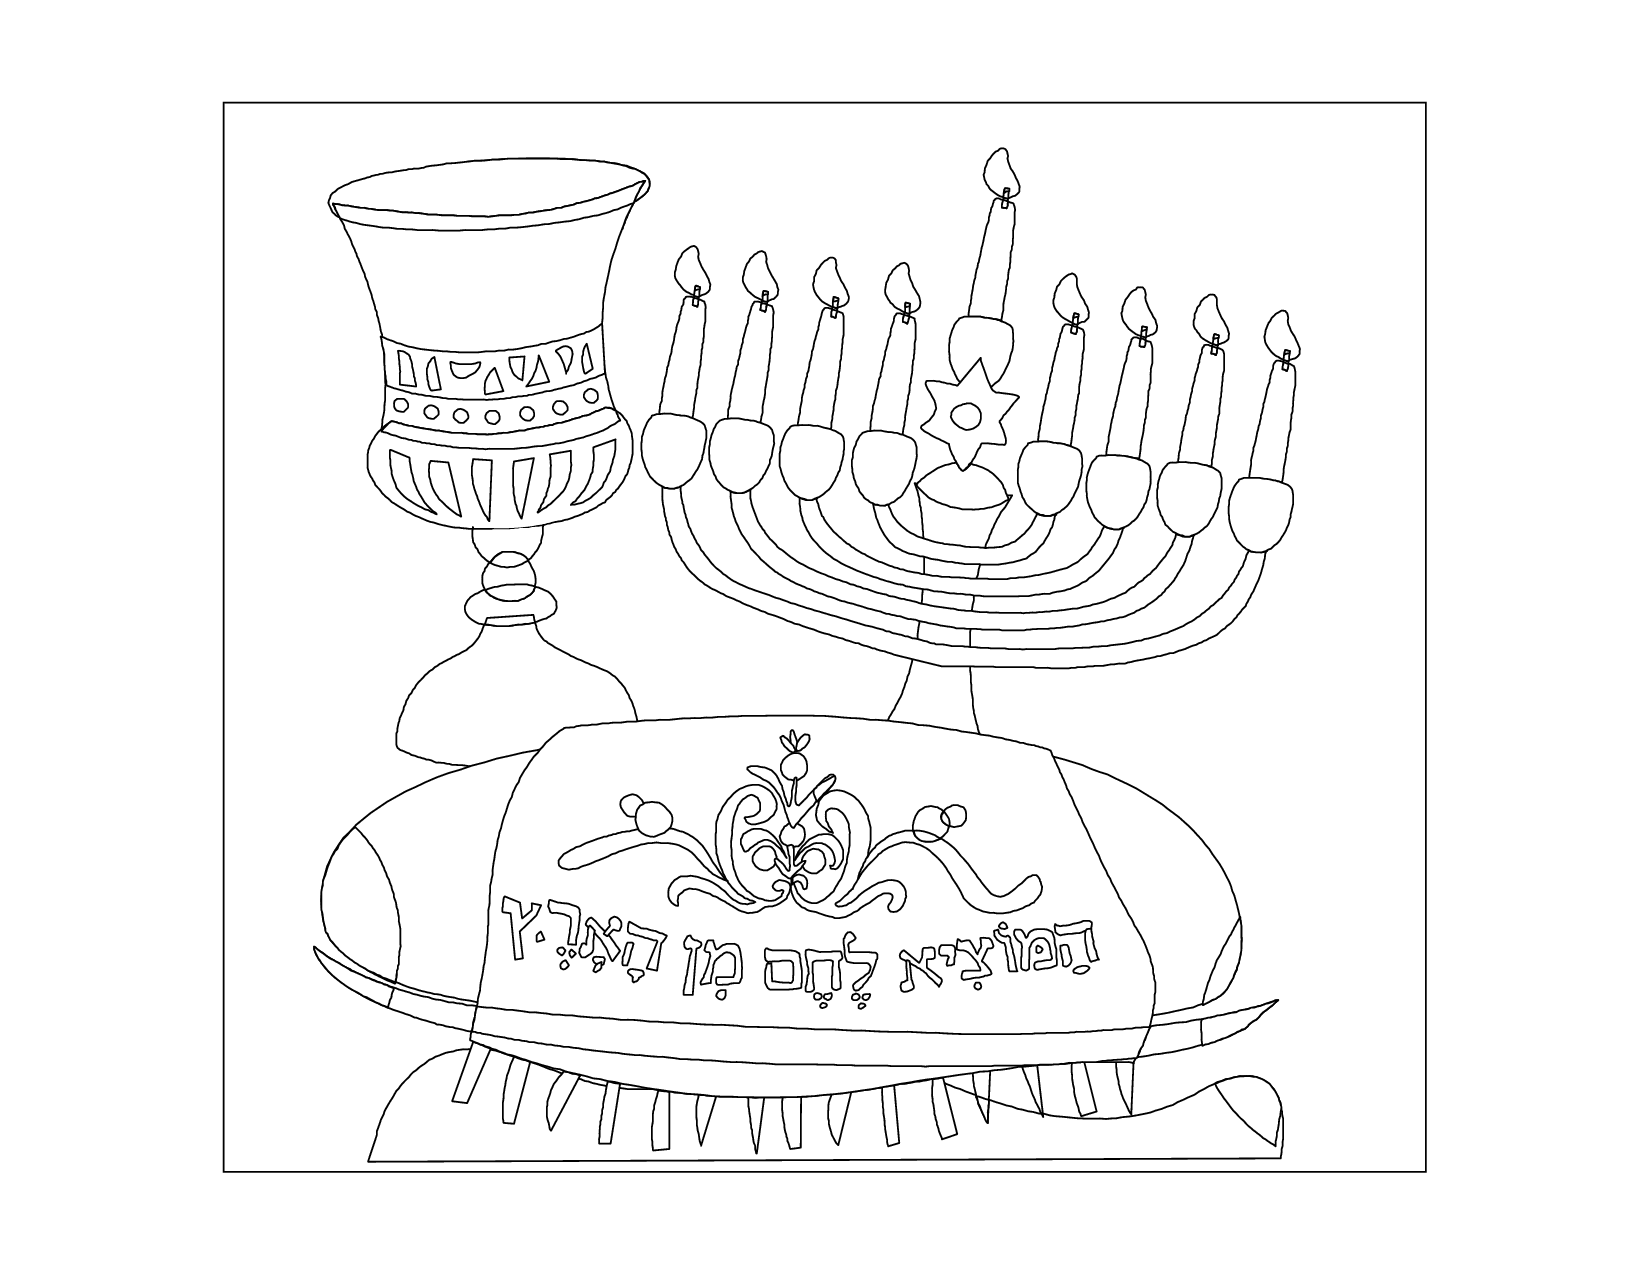 chanukah story coloring pages | Hanukkah Story And Coloring Page - Coloring Home